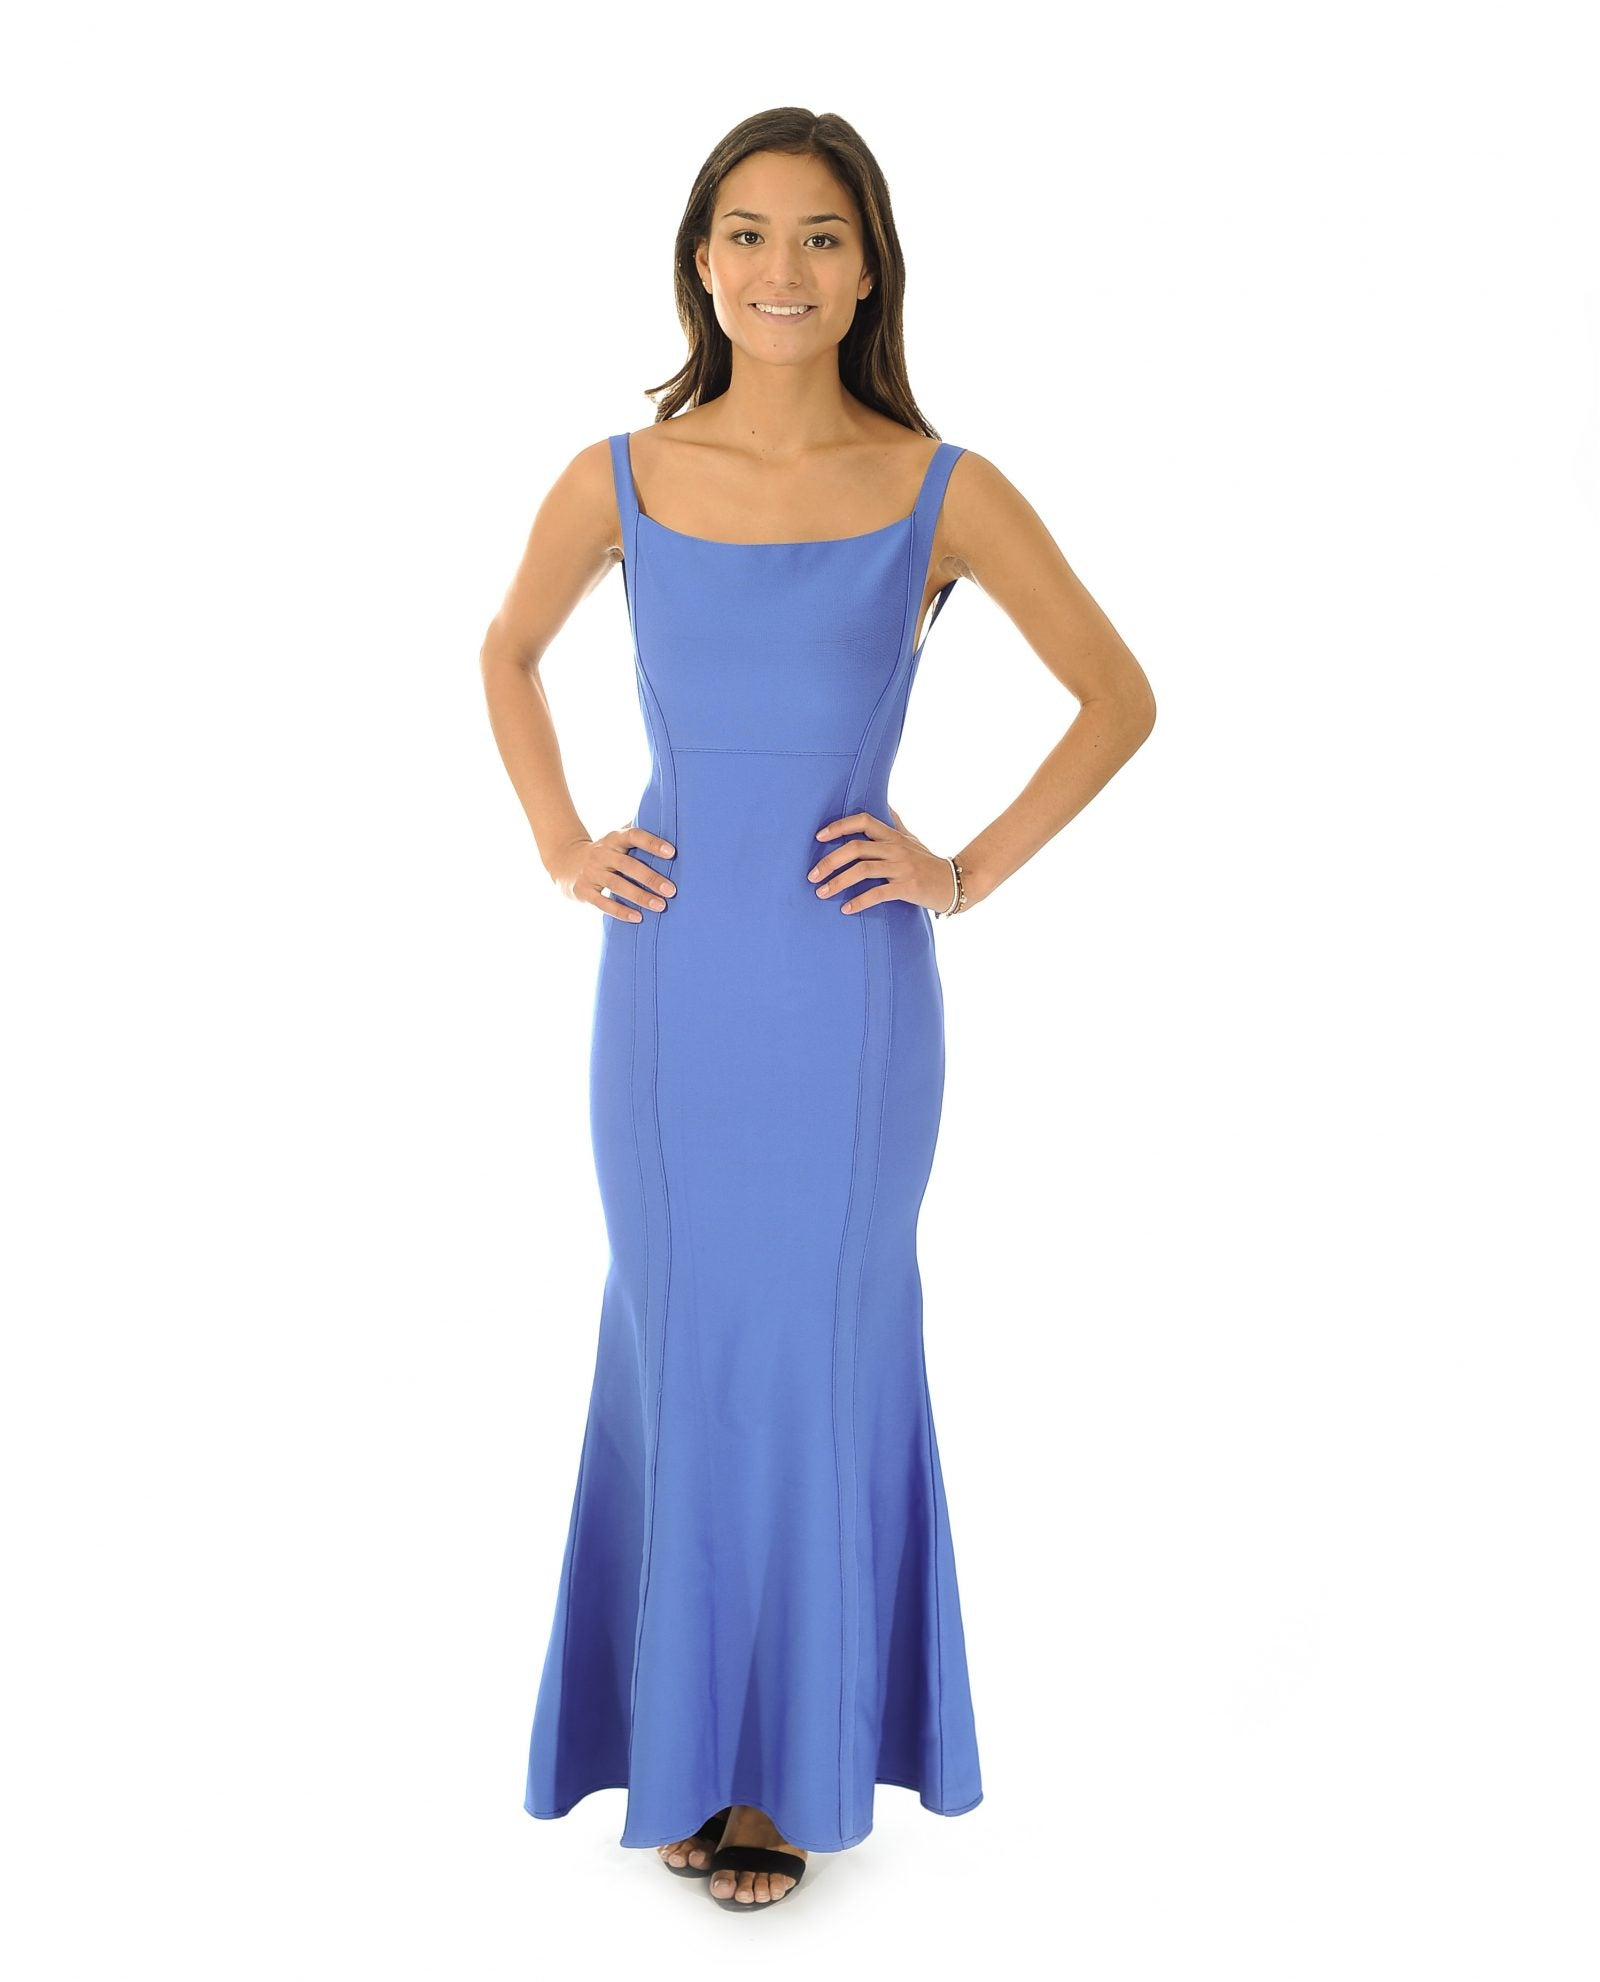 BLUE BODYCON MAXI DRESS WITH SCOOP BACK_AAA0600